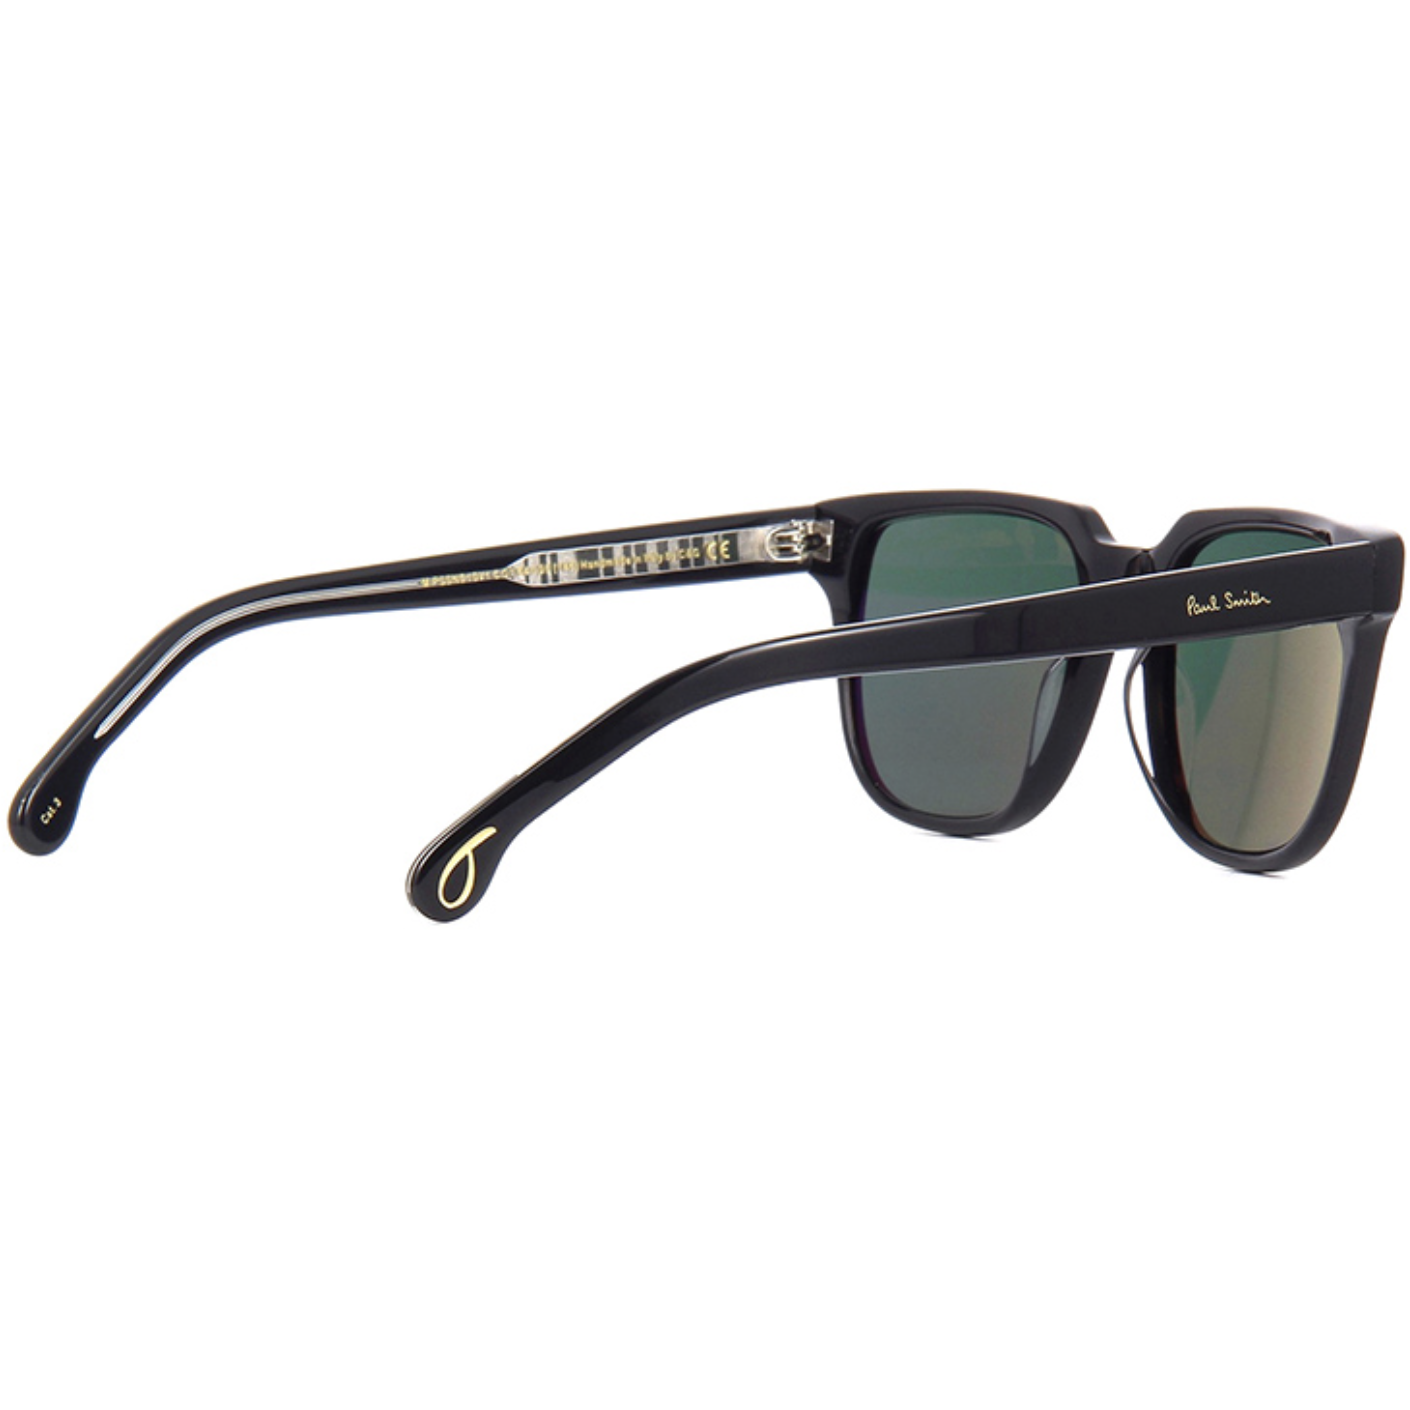 PAUL SMITH EYEWEAR AUBREY SUNGLASSES BLACK INK